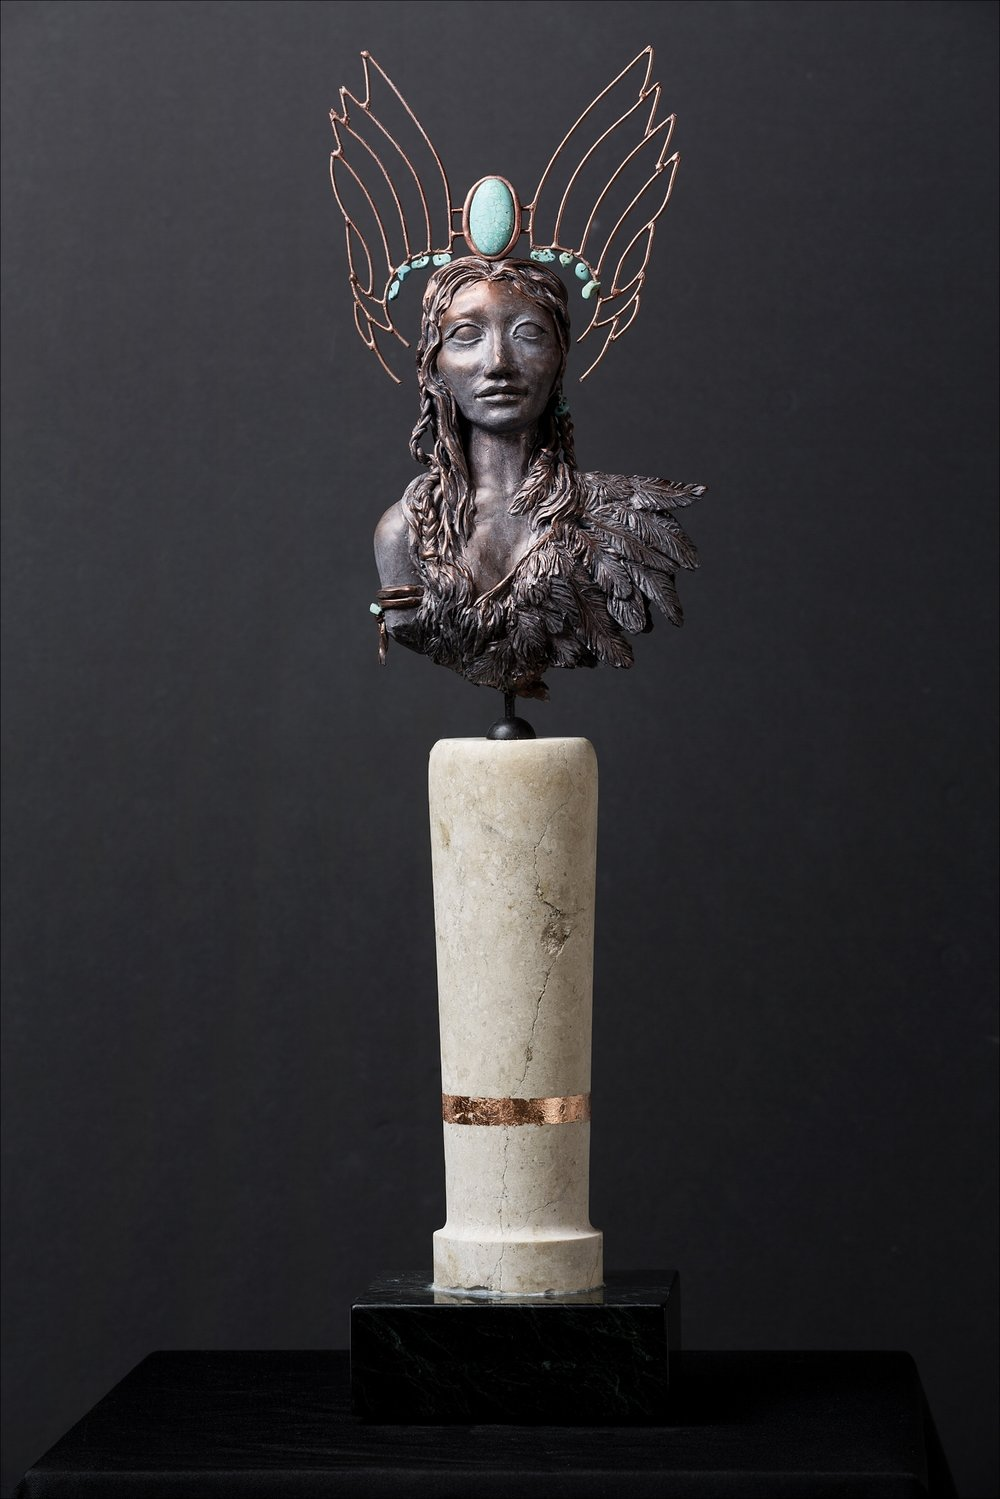 Force of Nature-Freedom - She is a Force of Nature. Untethered by her humanness, Freedom ascends.Polymer clay, epoxy clay, marble, granite, copper, turquoise21